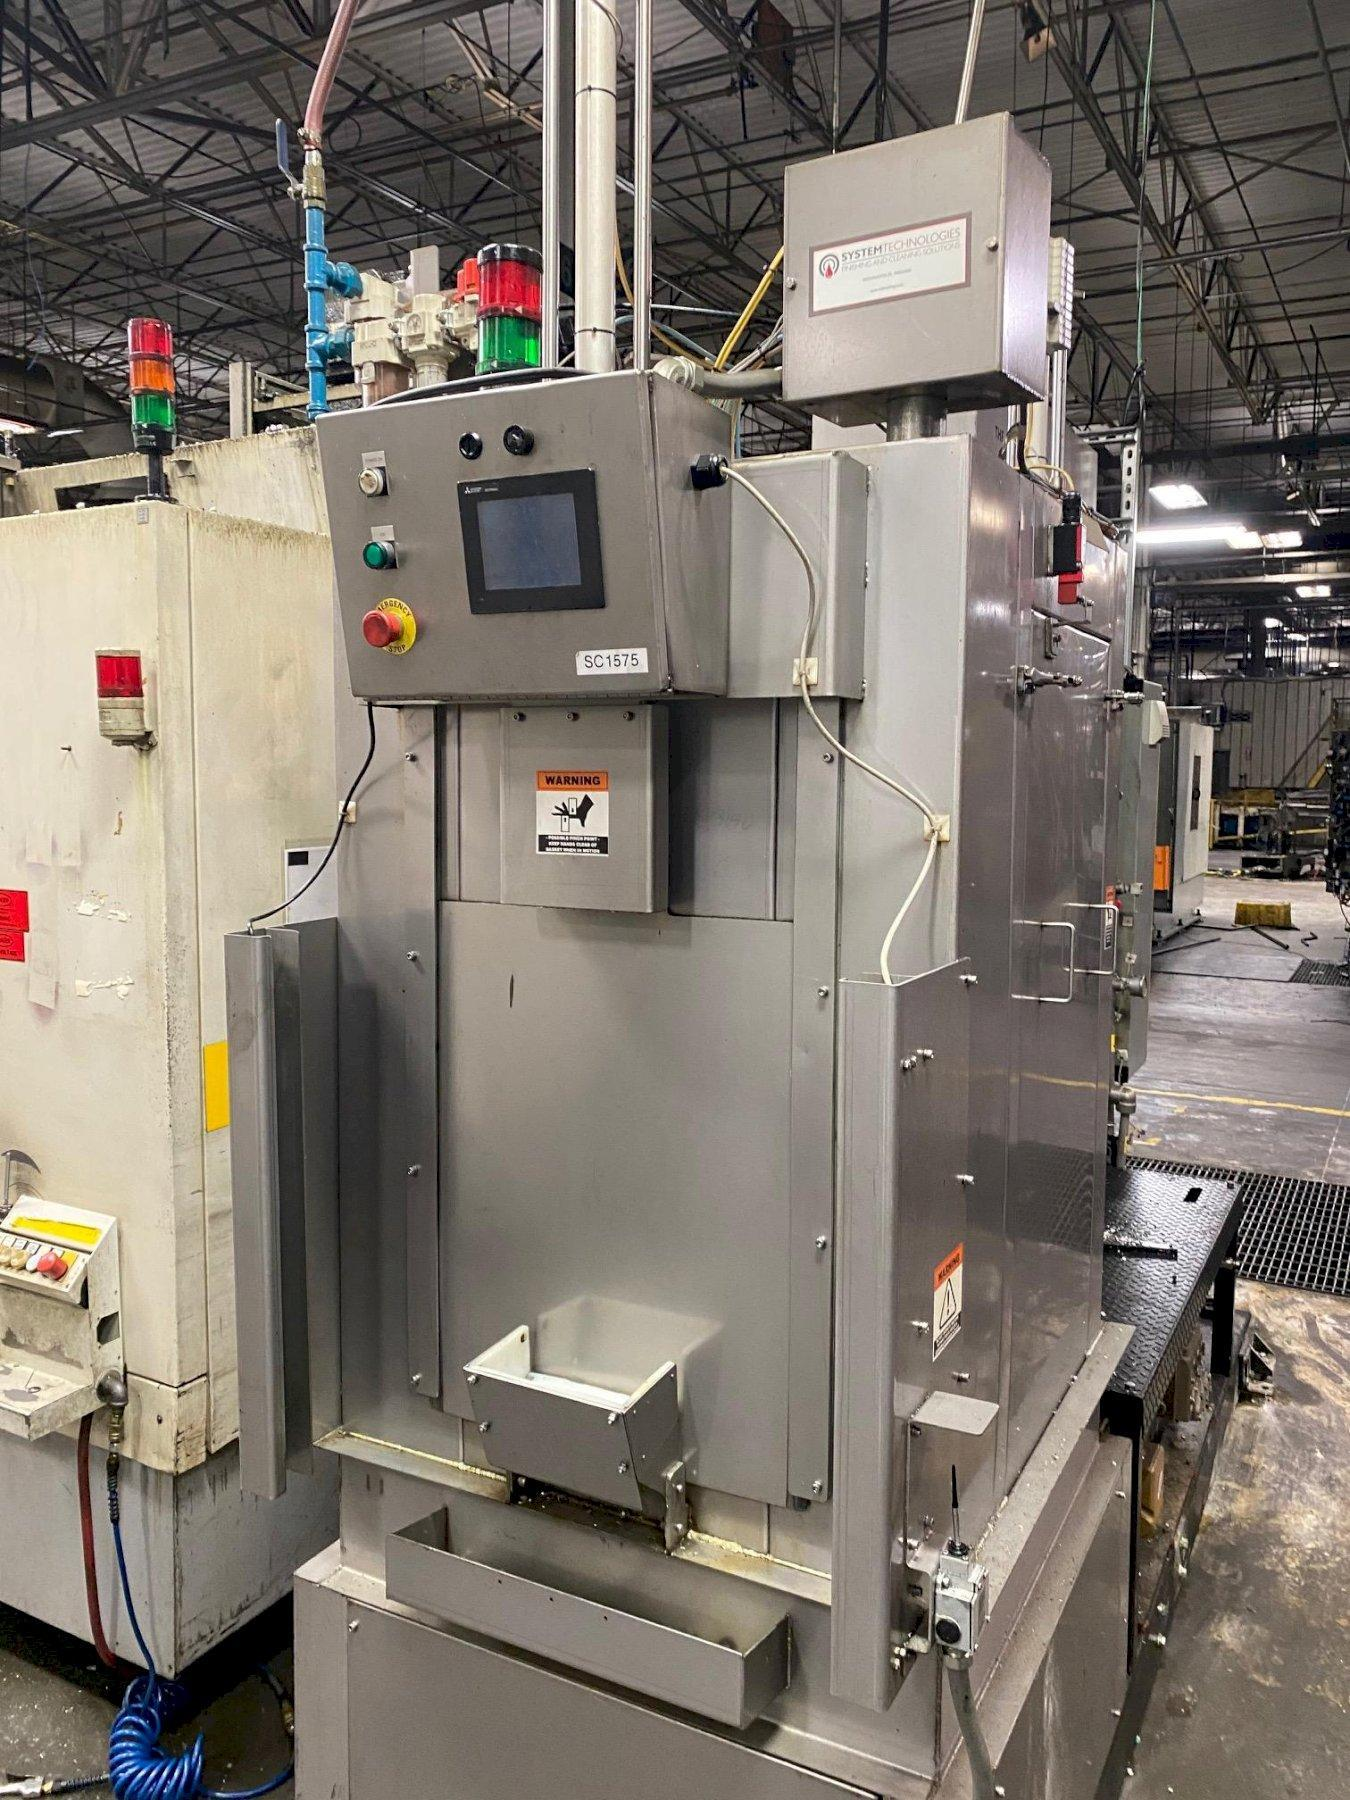 SYSTEM TECHNOLOGIES MODEL #CMI-123-480 CLEAN MACHINE HIGH PRESSURE STAINLESS STEEL PARTS WASHER: STOCK #15315